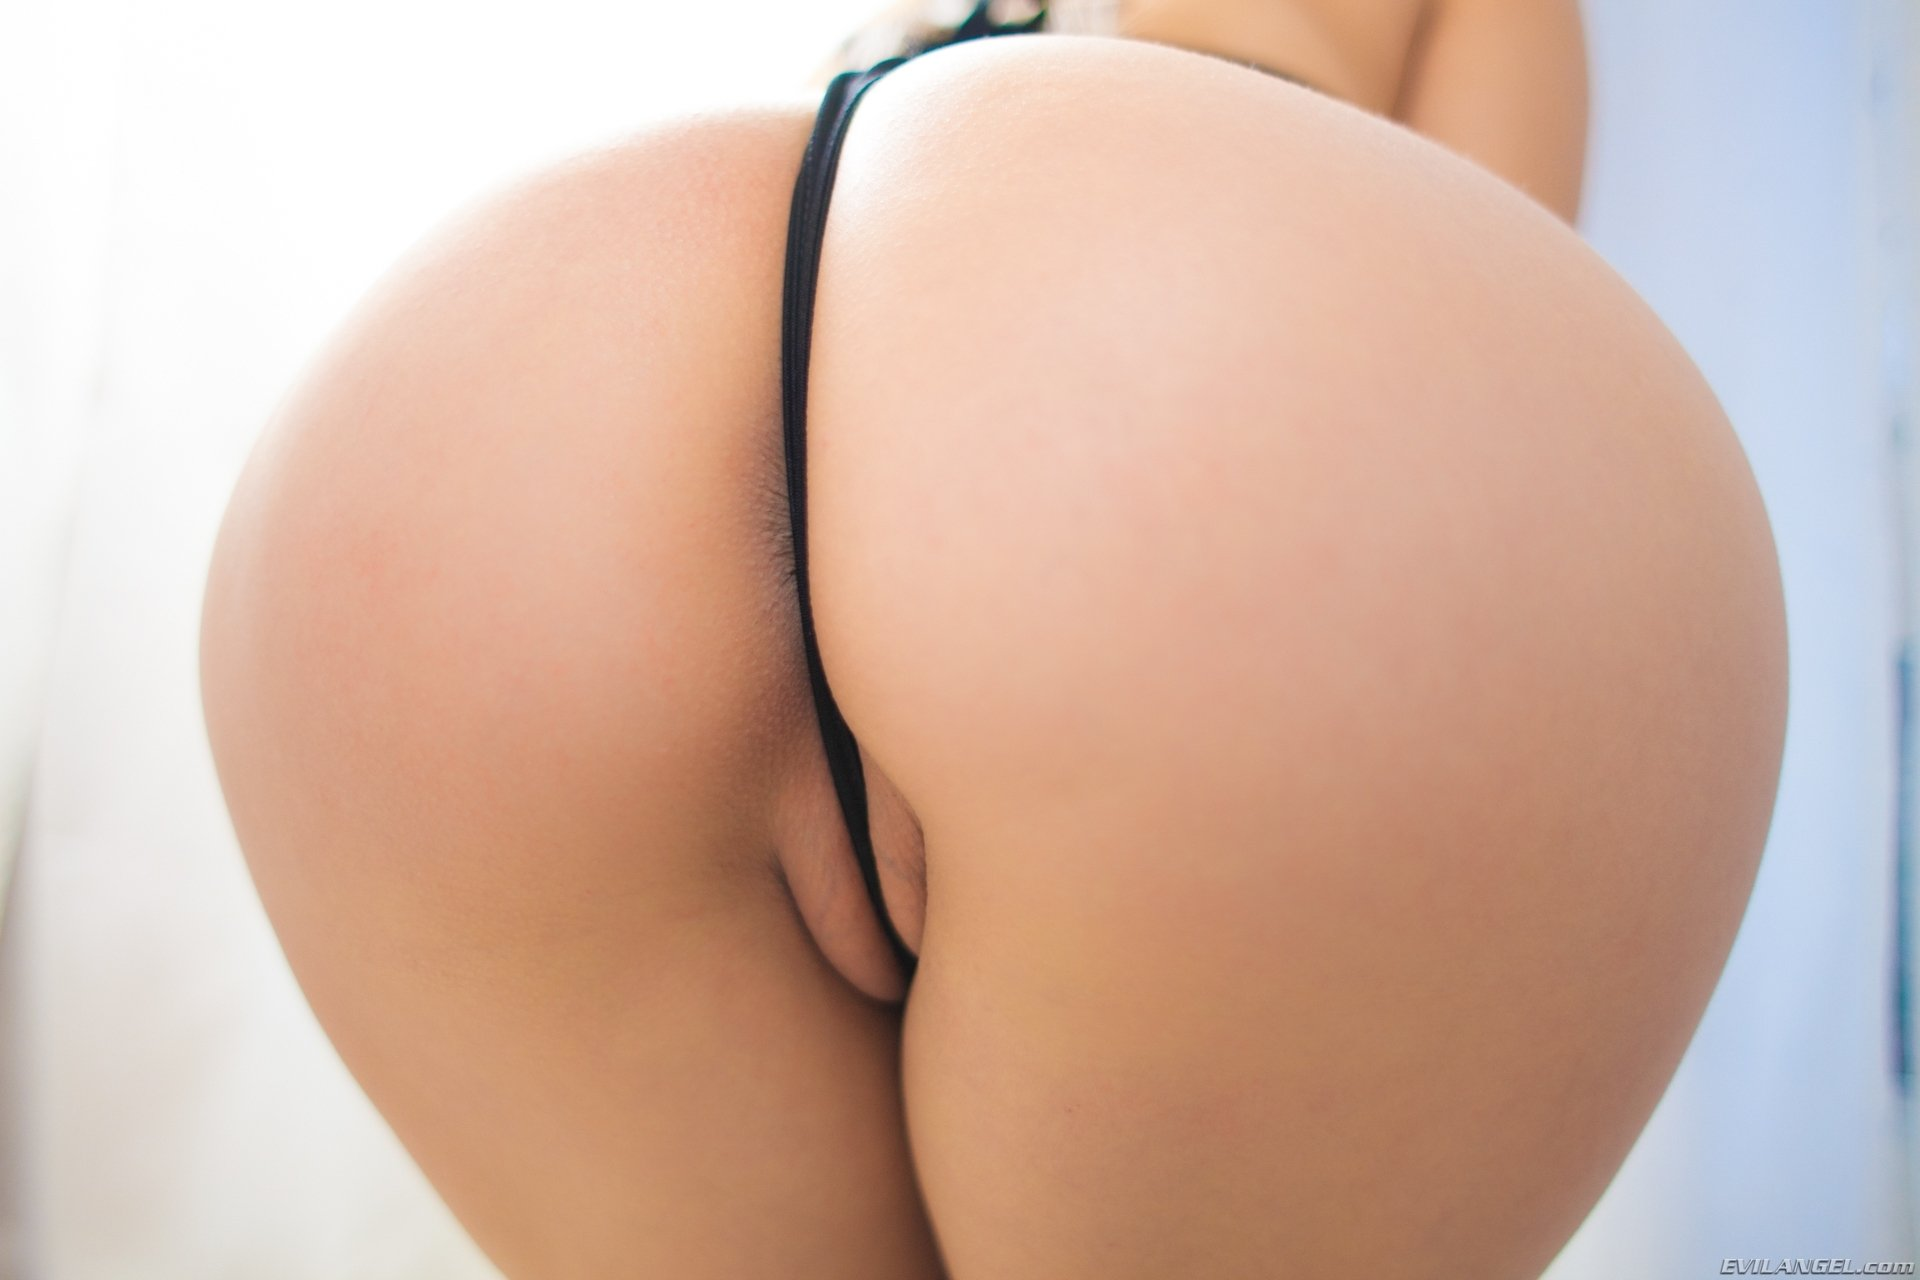 pussy close up ass black